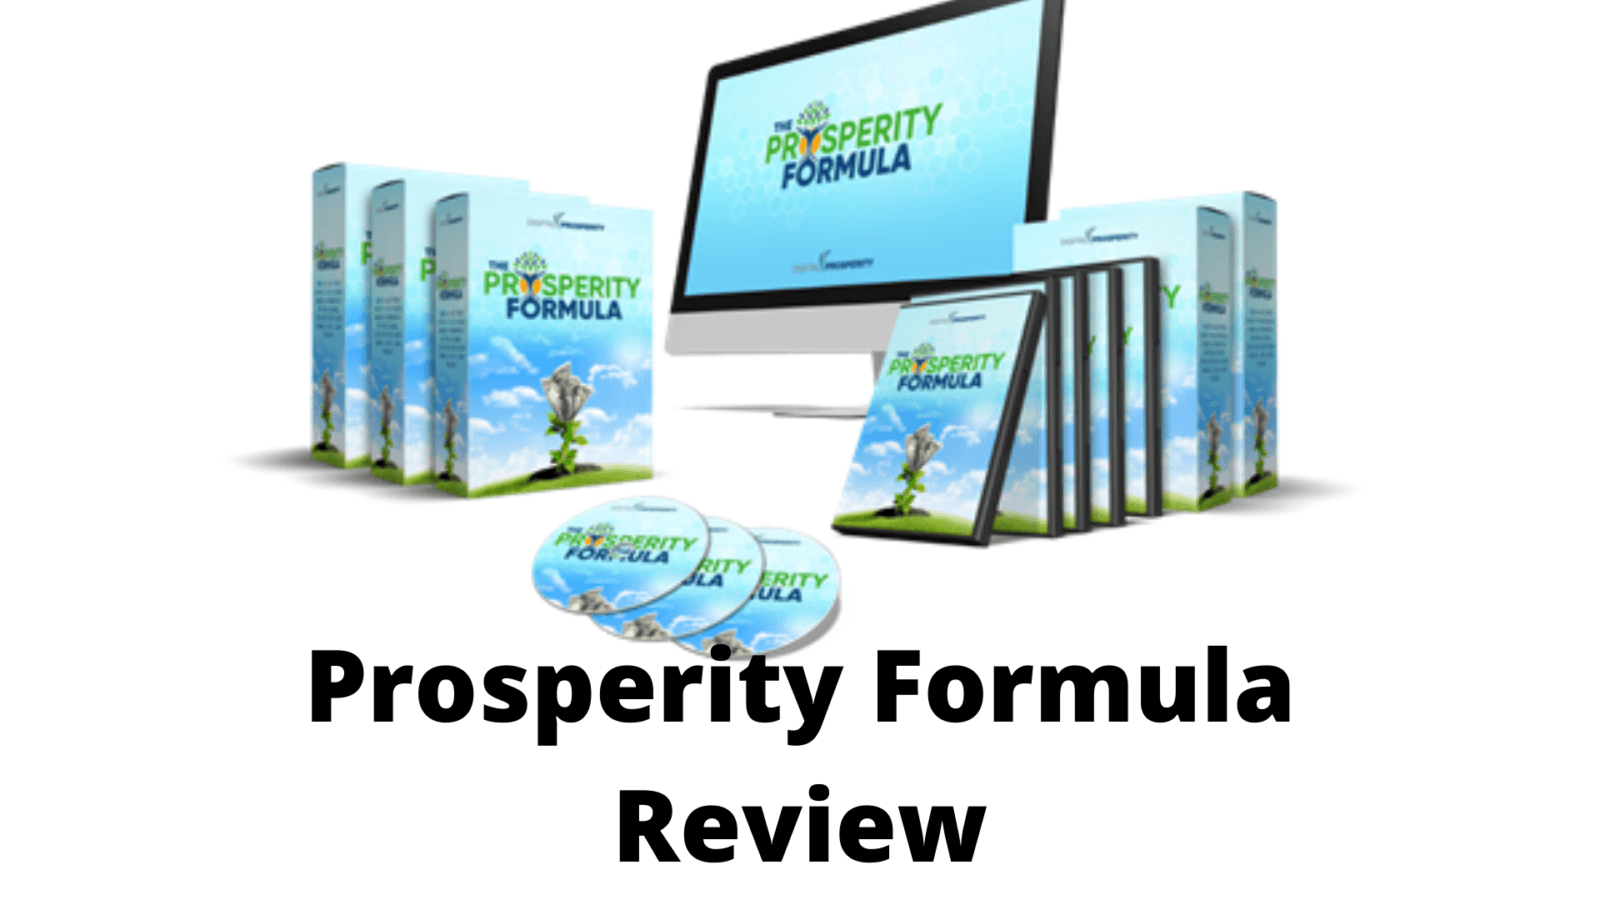 The Prosperity Formula Review